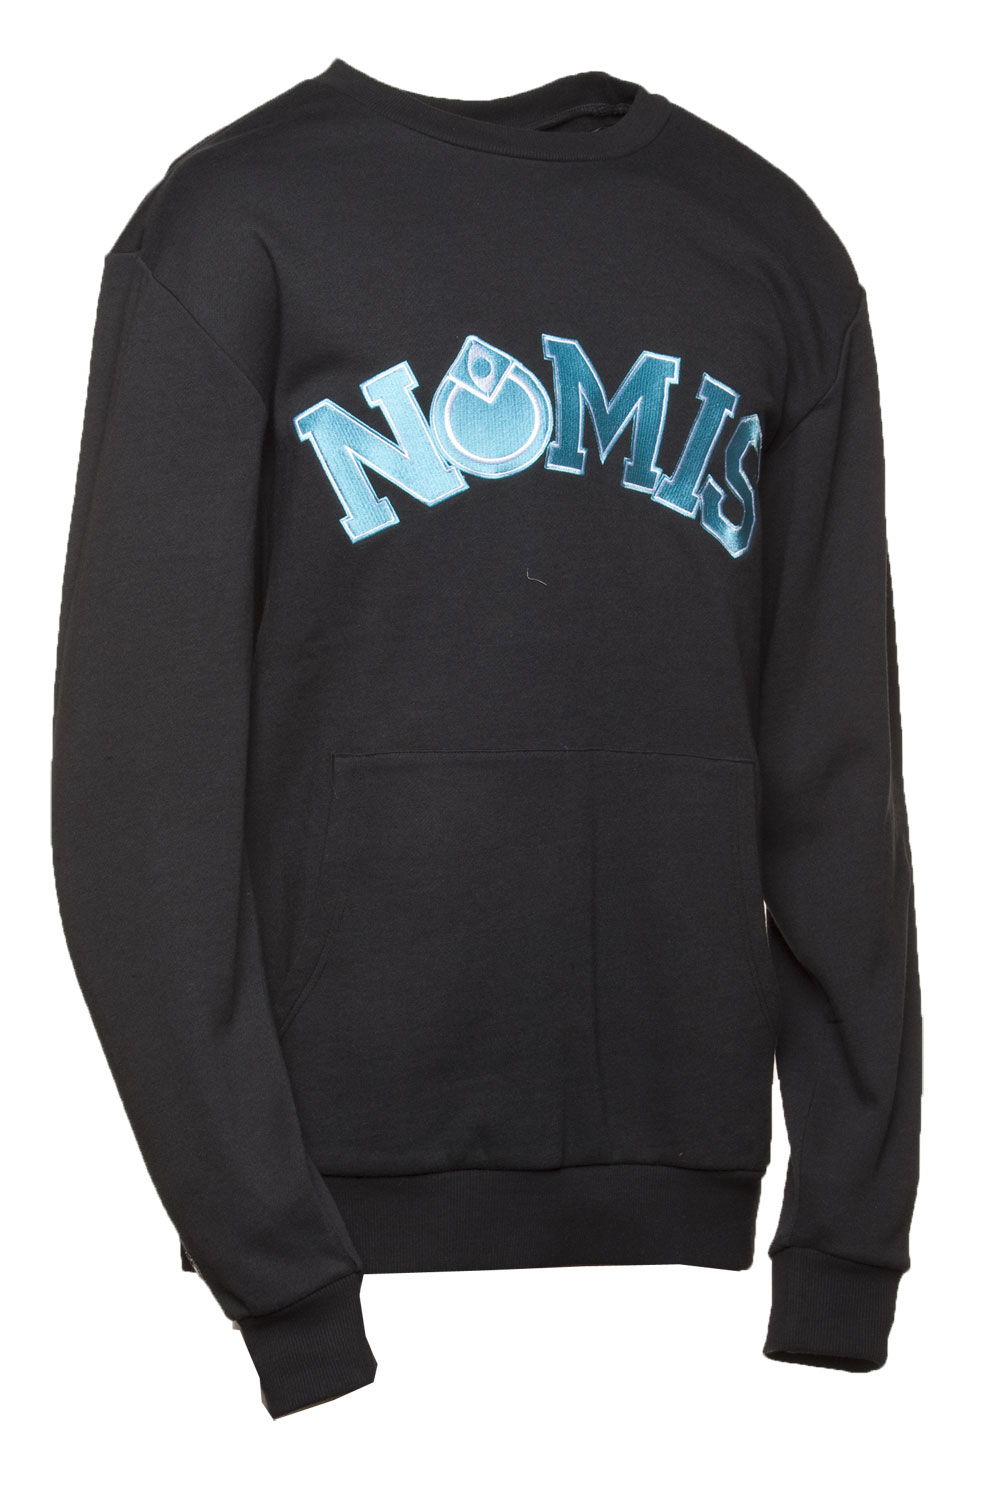 Nomis Essential Athletic Crew is going to be one of favorites to wear. This good looking crew is so comfortable to the skin with its polyester and cotton mix you''ll hate taking it off. Staying warm won''t be a problem for you and staying stylish you will be the envy of all your friends. And having been made with two perfect fabrics, you can put this into your washing machine and it comes out the same size and color. Your gonna love wearing it inside and outside your home. - $40.95